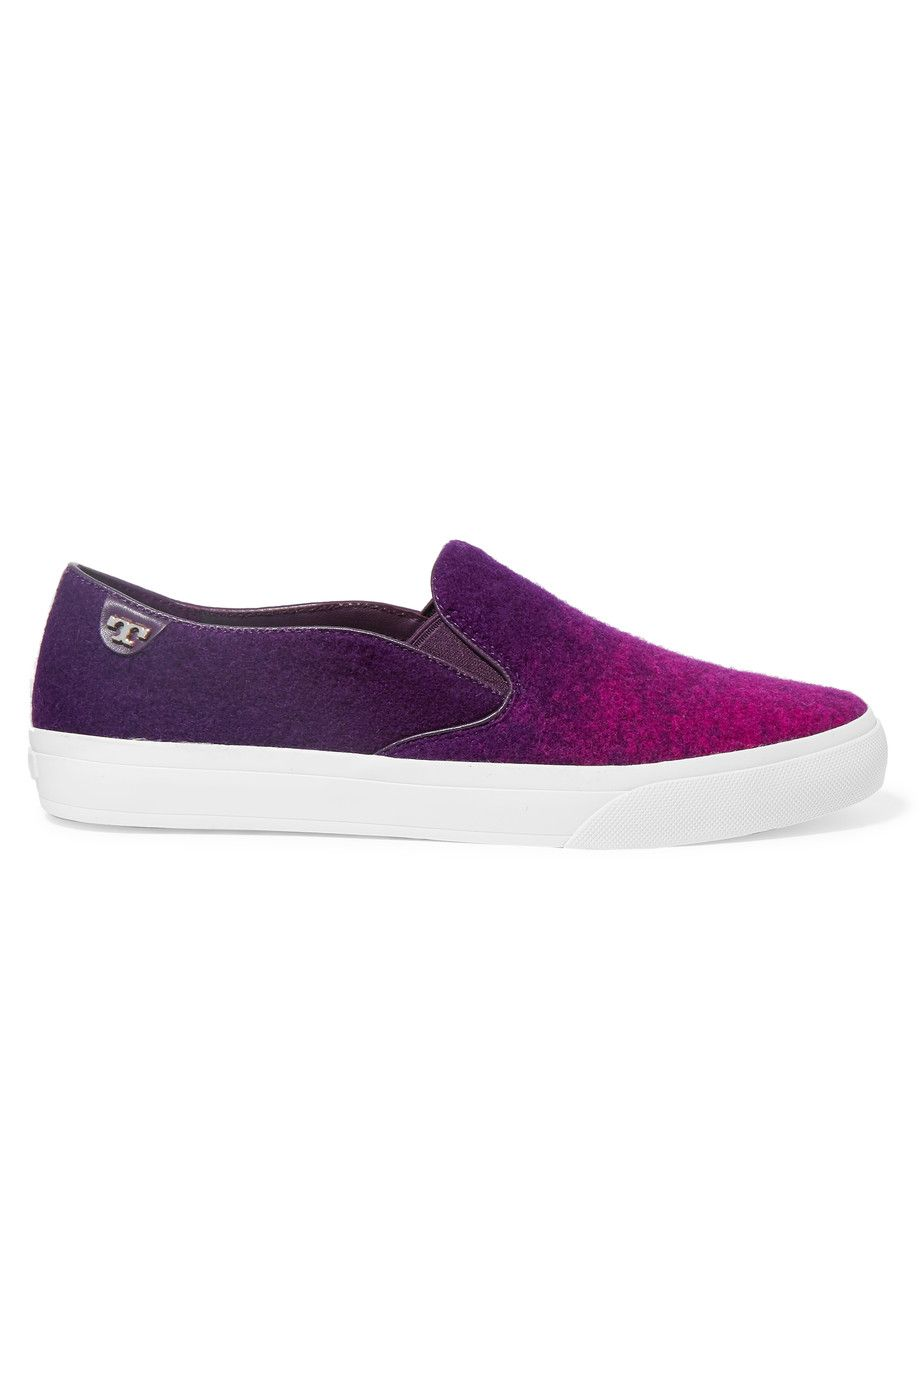 TORY BURCH Stardust Ombré Felt Slip-On Sneakers. #toryburch #shoes #sneakers